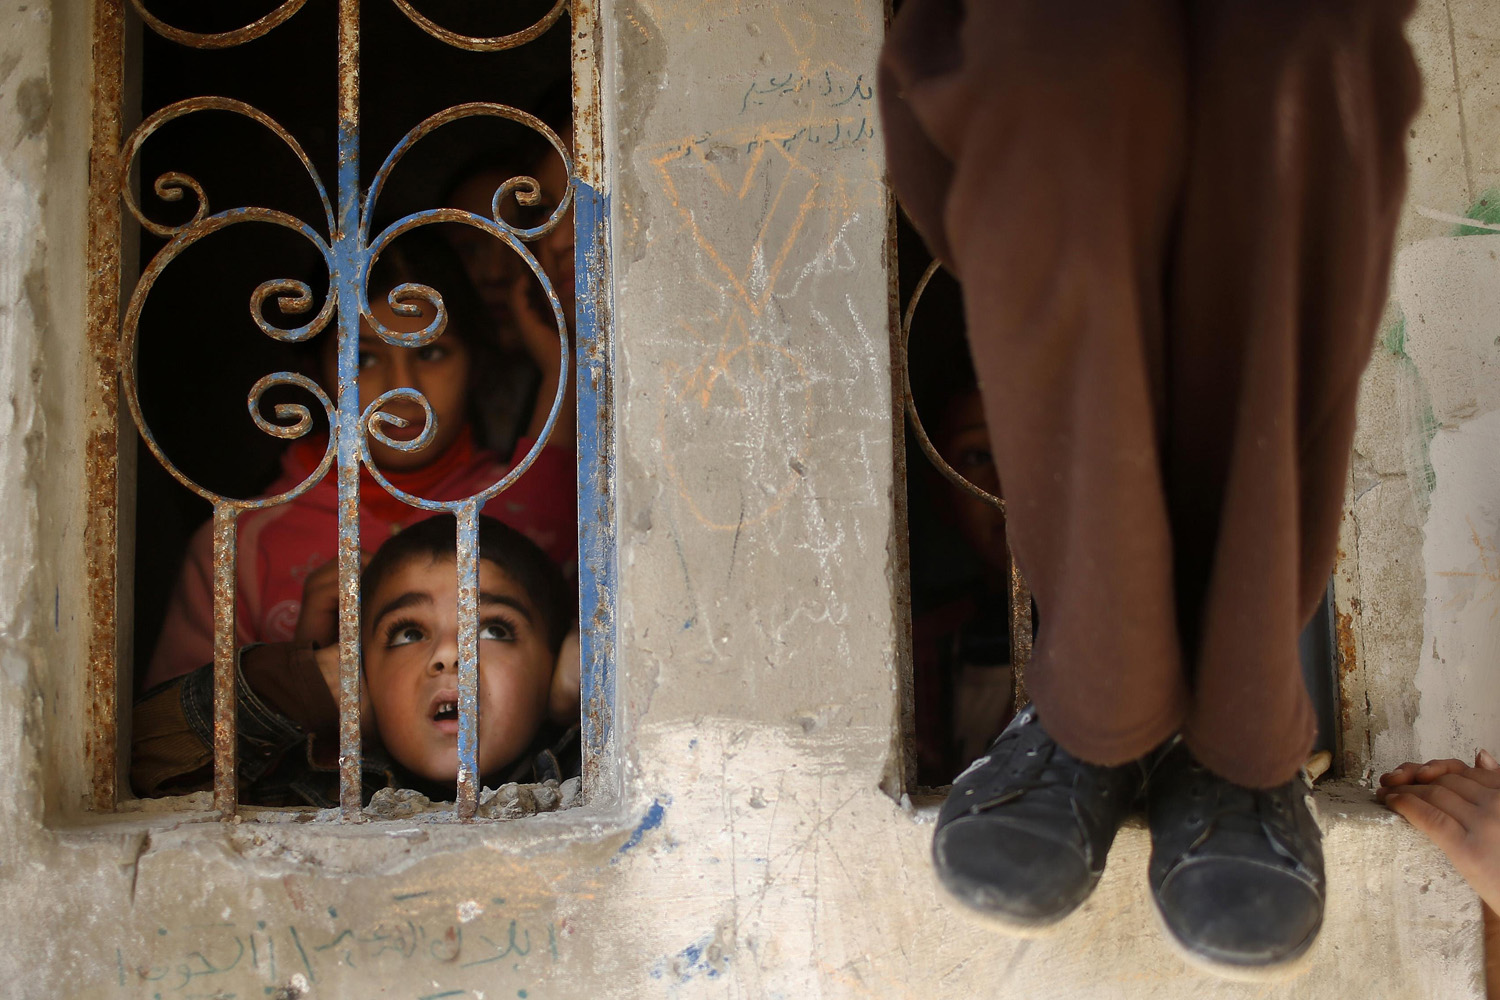 Jan. 8, 2014. A Palestinian boy covers his ears as a militant fires a weapon in the air during the funeral of 32-year-old Palestinian Islamic Jihad militant Mohammed Salama al-Ijla in Gaza City.